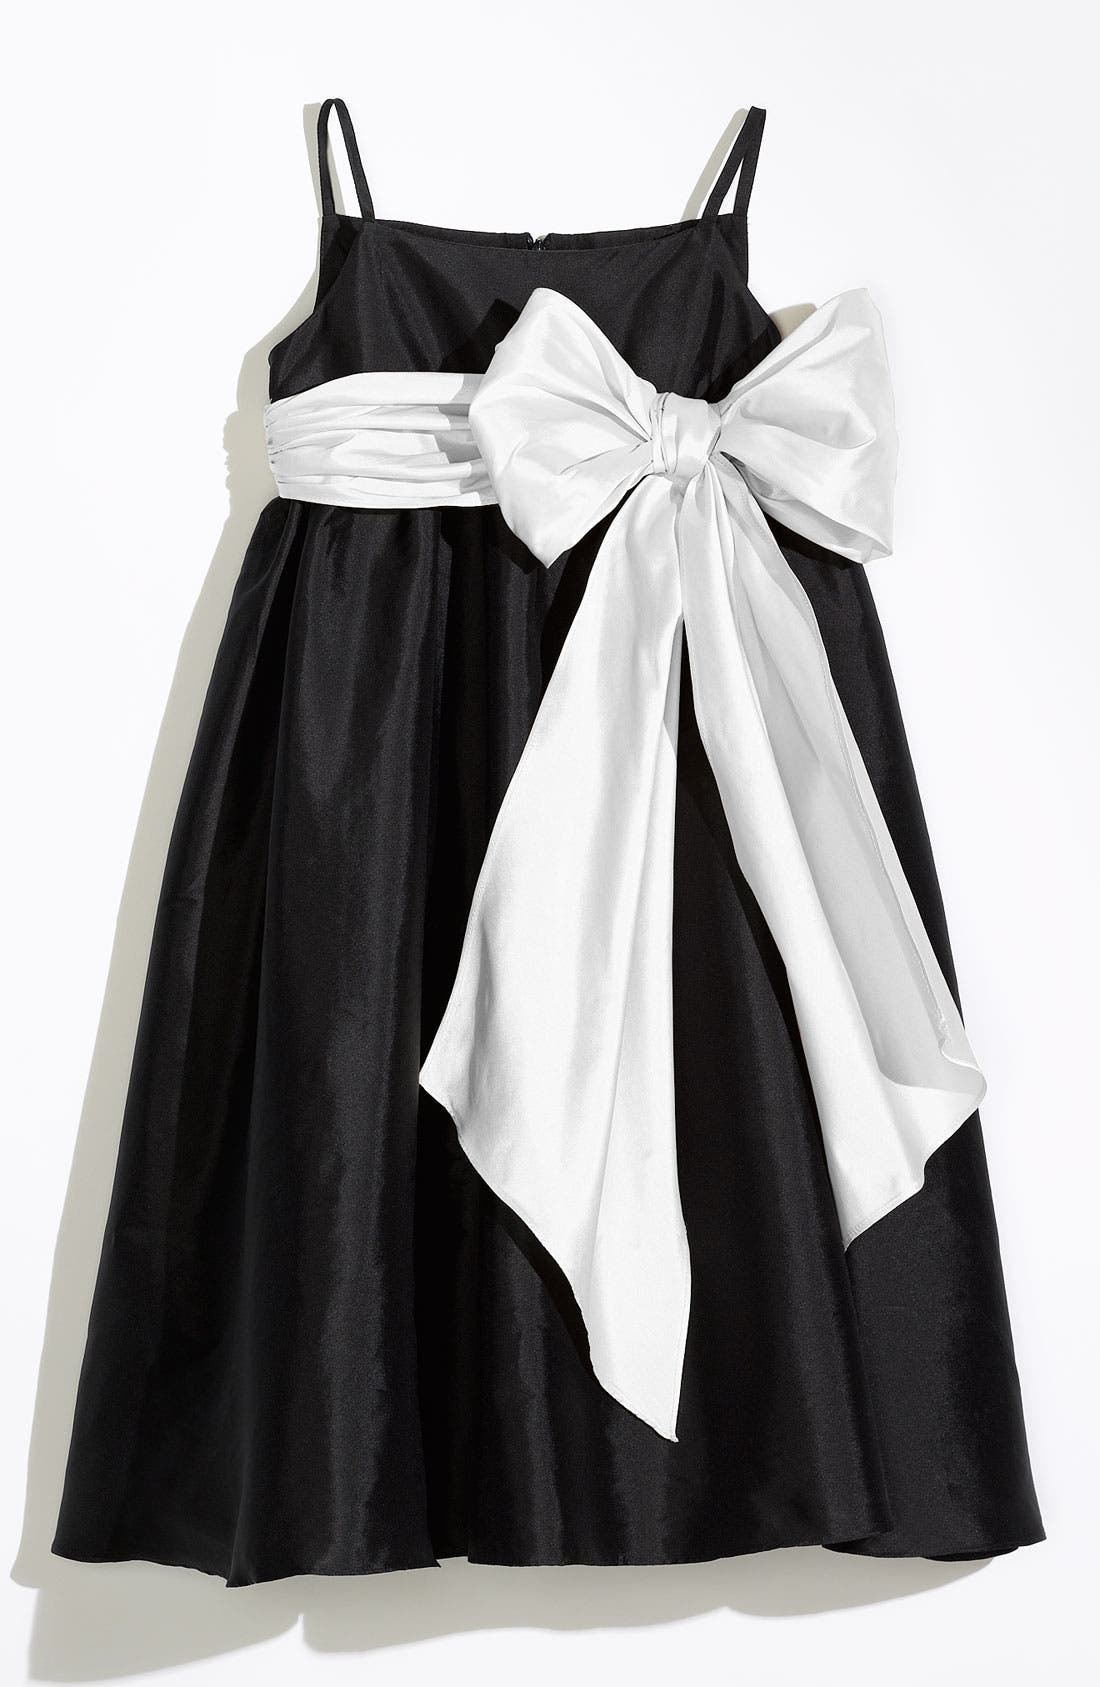 Alternate Image 1 Selected - Us Angels Sleeveless Empire Waist Taffeta Dress (Toddler, Little Girls & Big Girls)